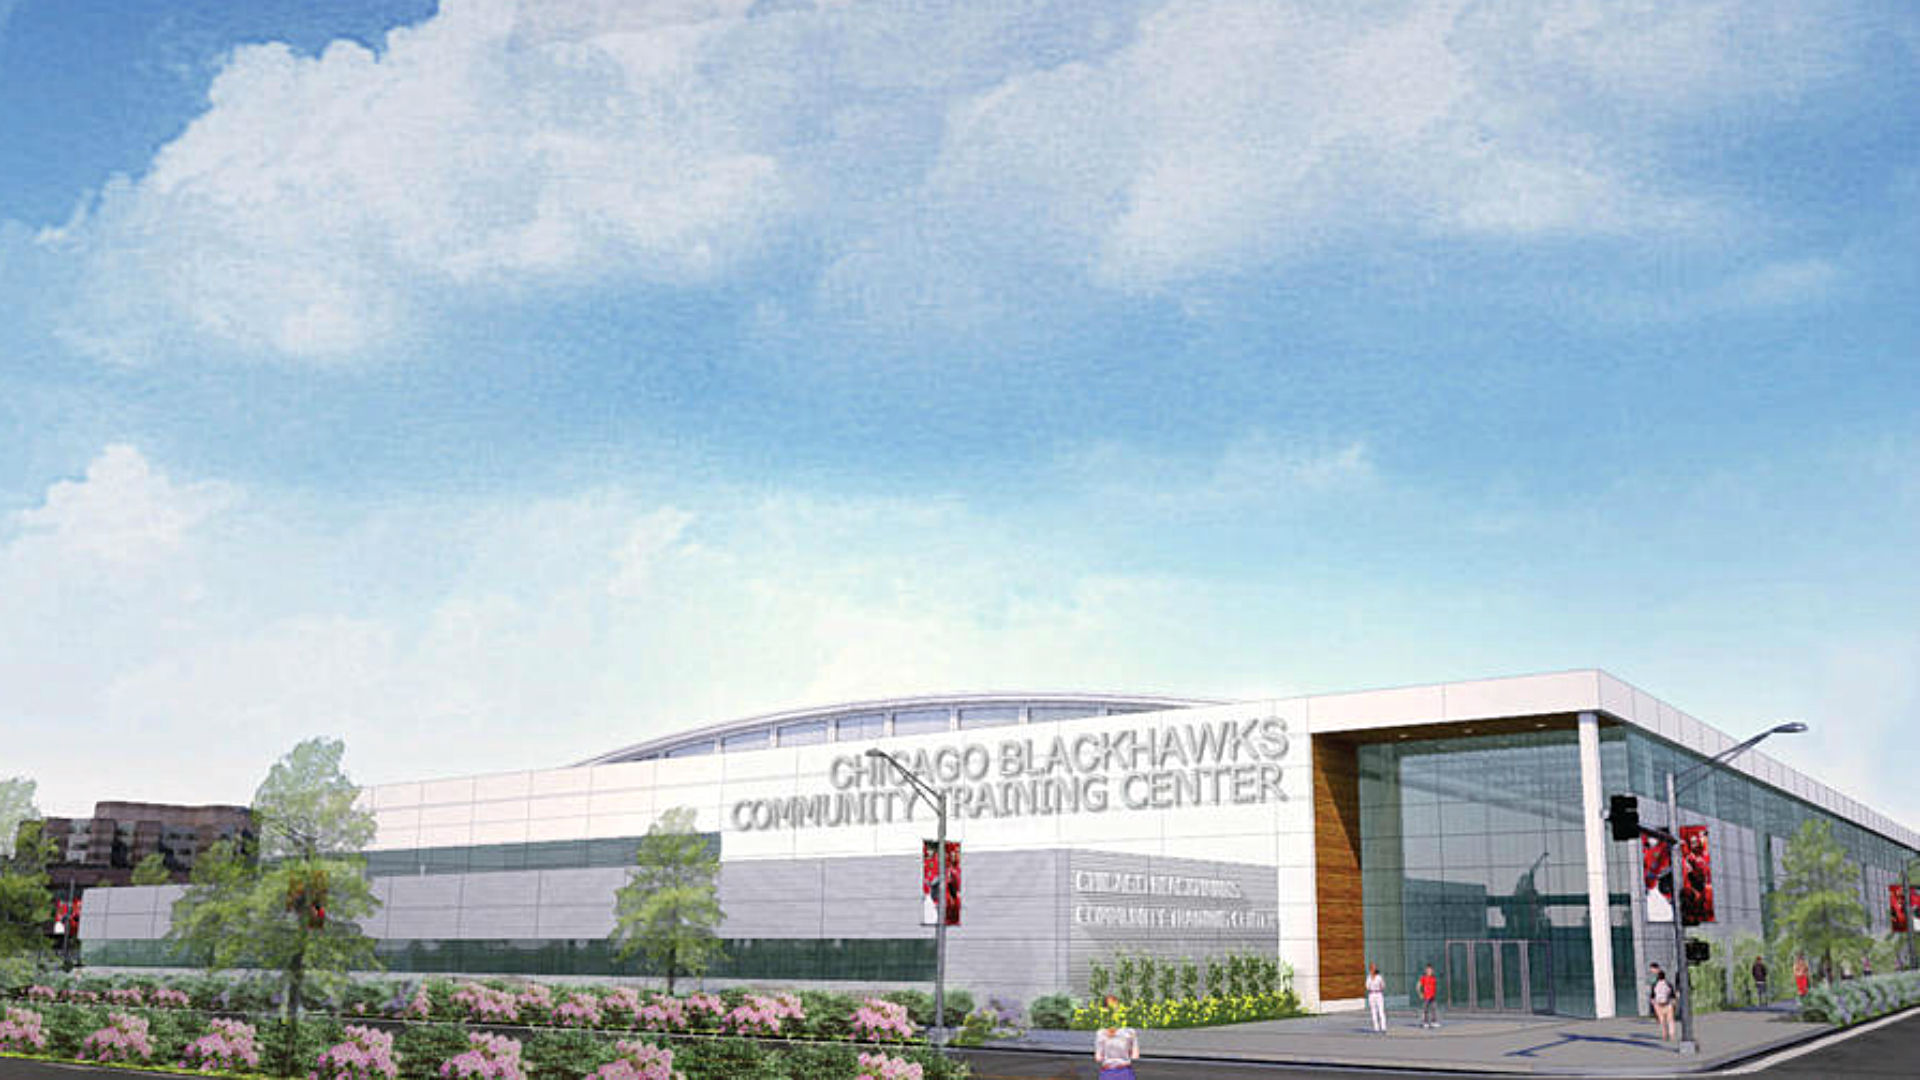 Blackhawks announce new practice facility project